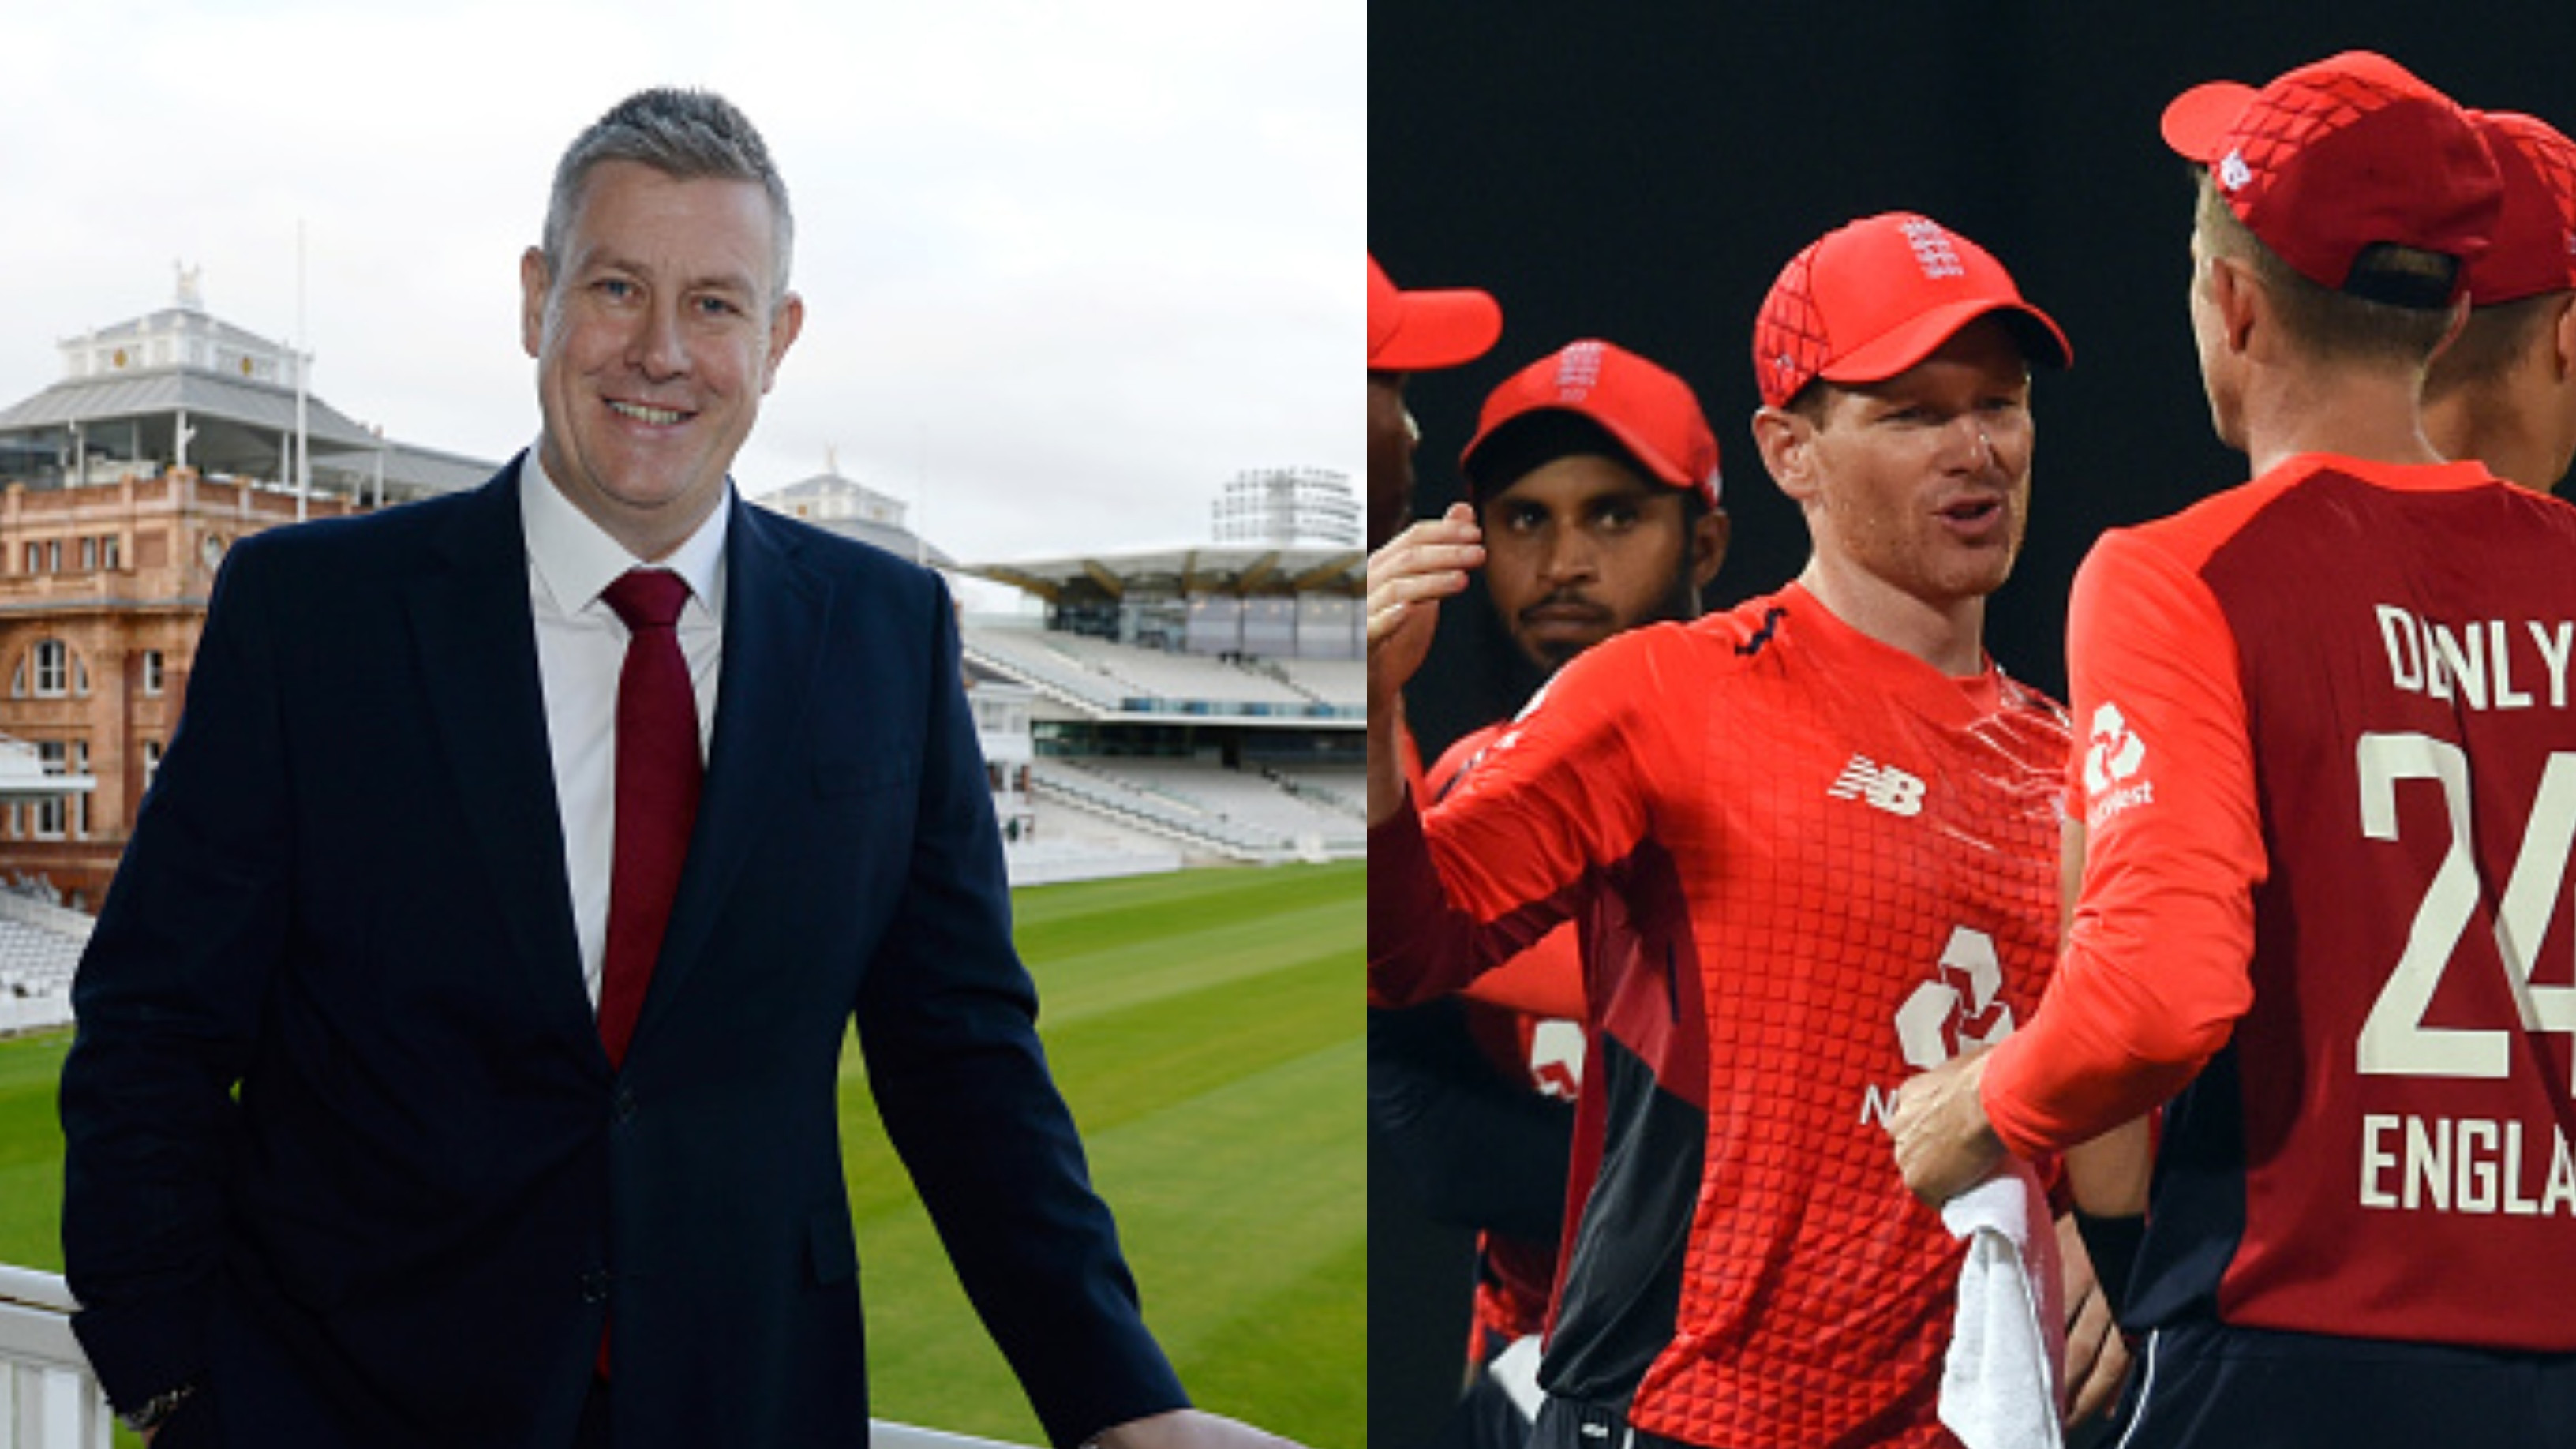 CWC 2019: Ashley Giles backs England to win World Cup and regain Ashes this year